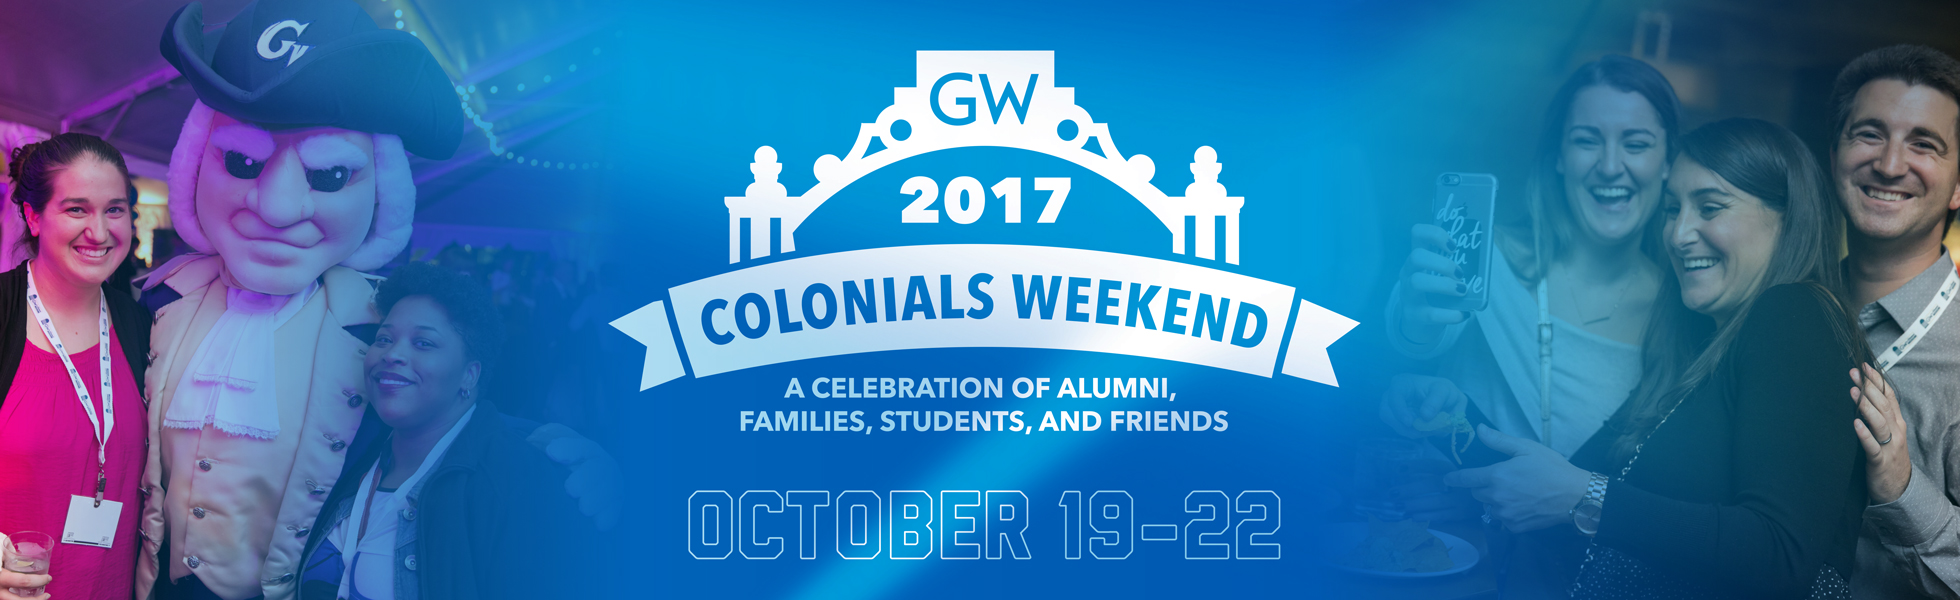 Colonials Weekend: A celebration of alumni, students, families and friends: October 19-22, 2017